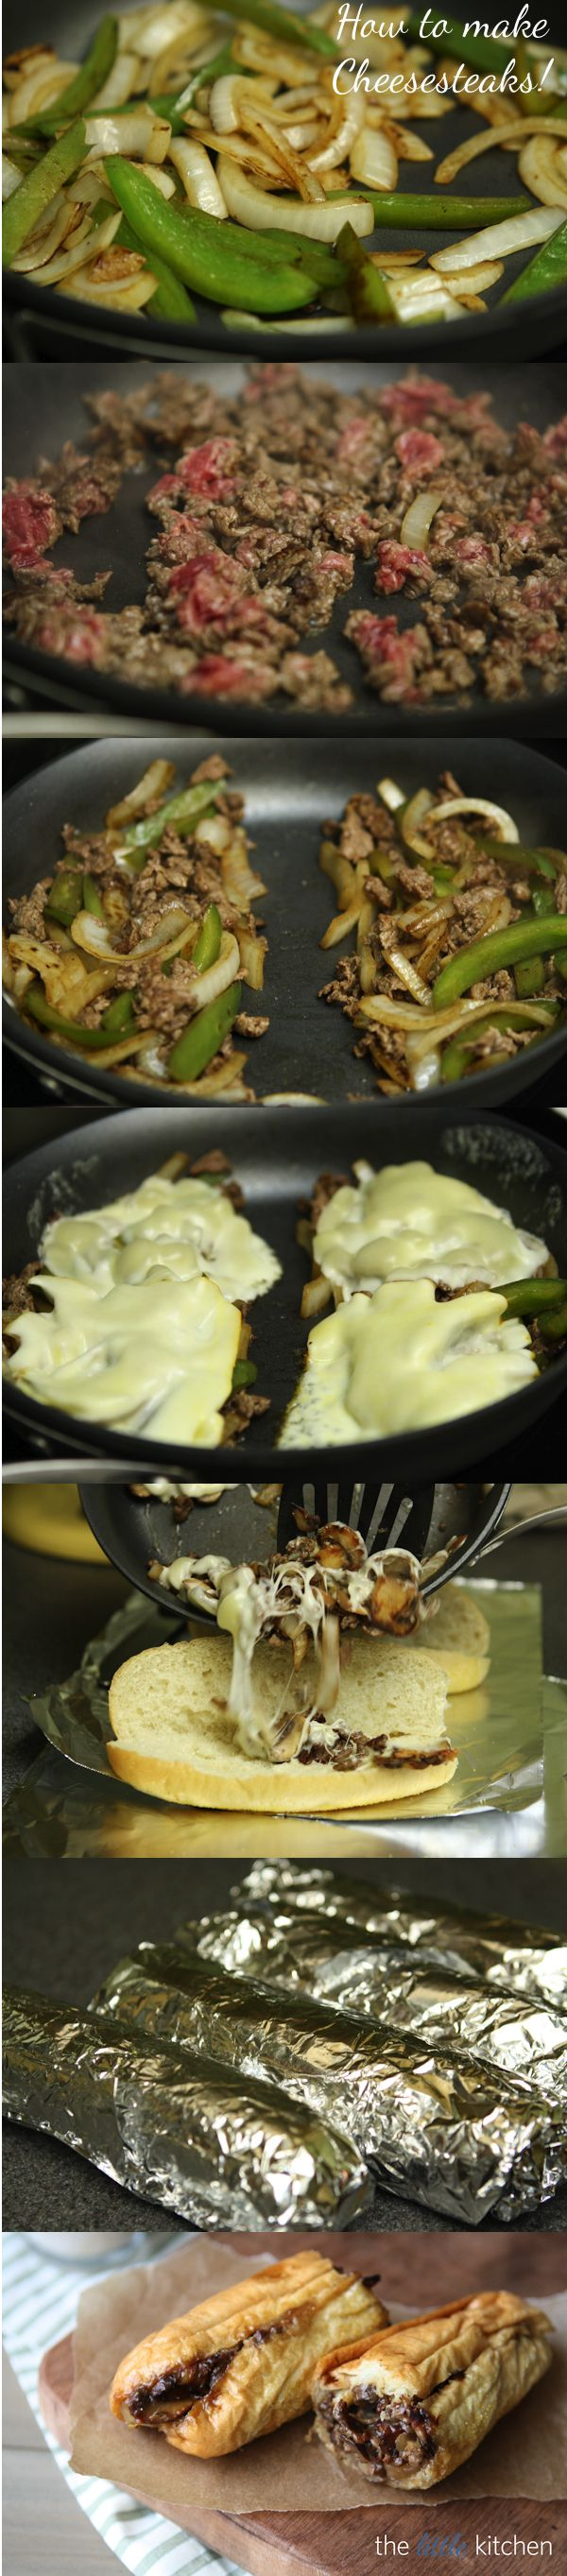 How make the BEST Cheesesteaks ever! {wrapping them in foil and putting them in the oven is the trick!}